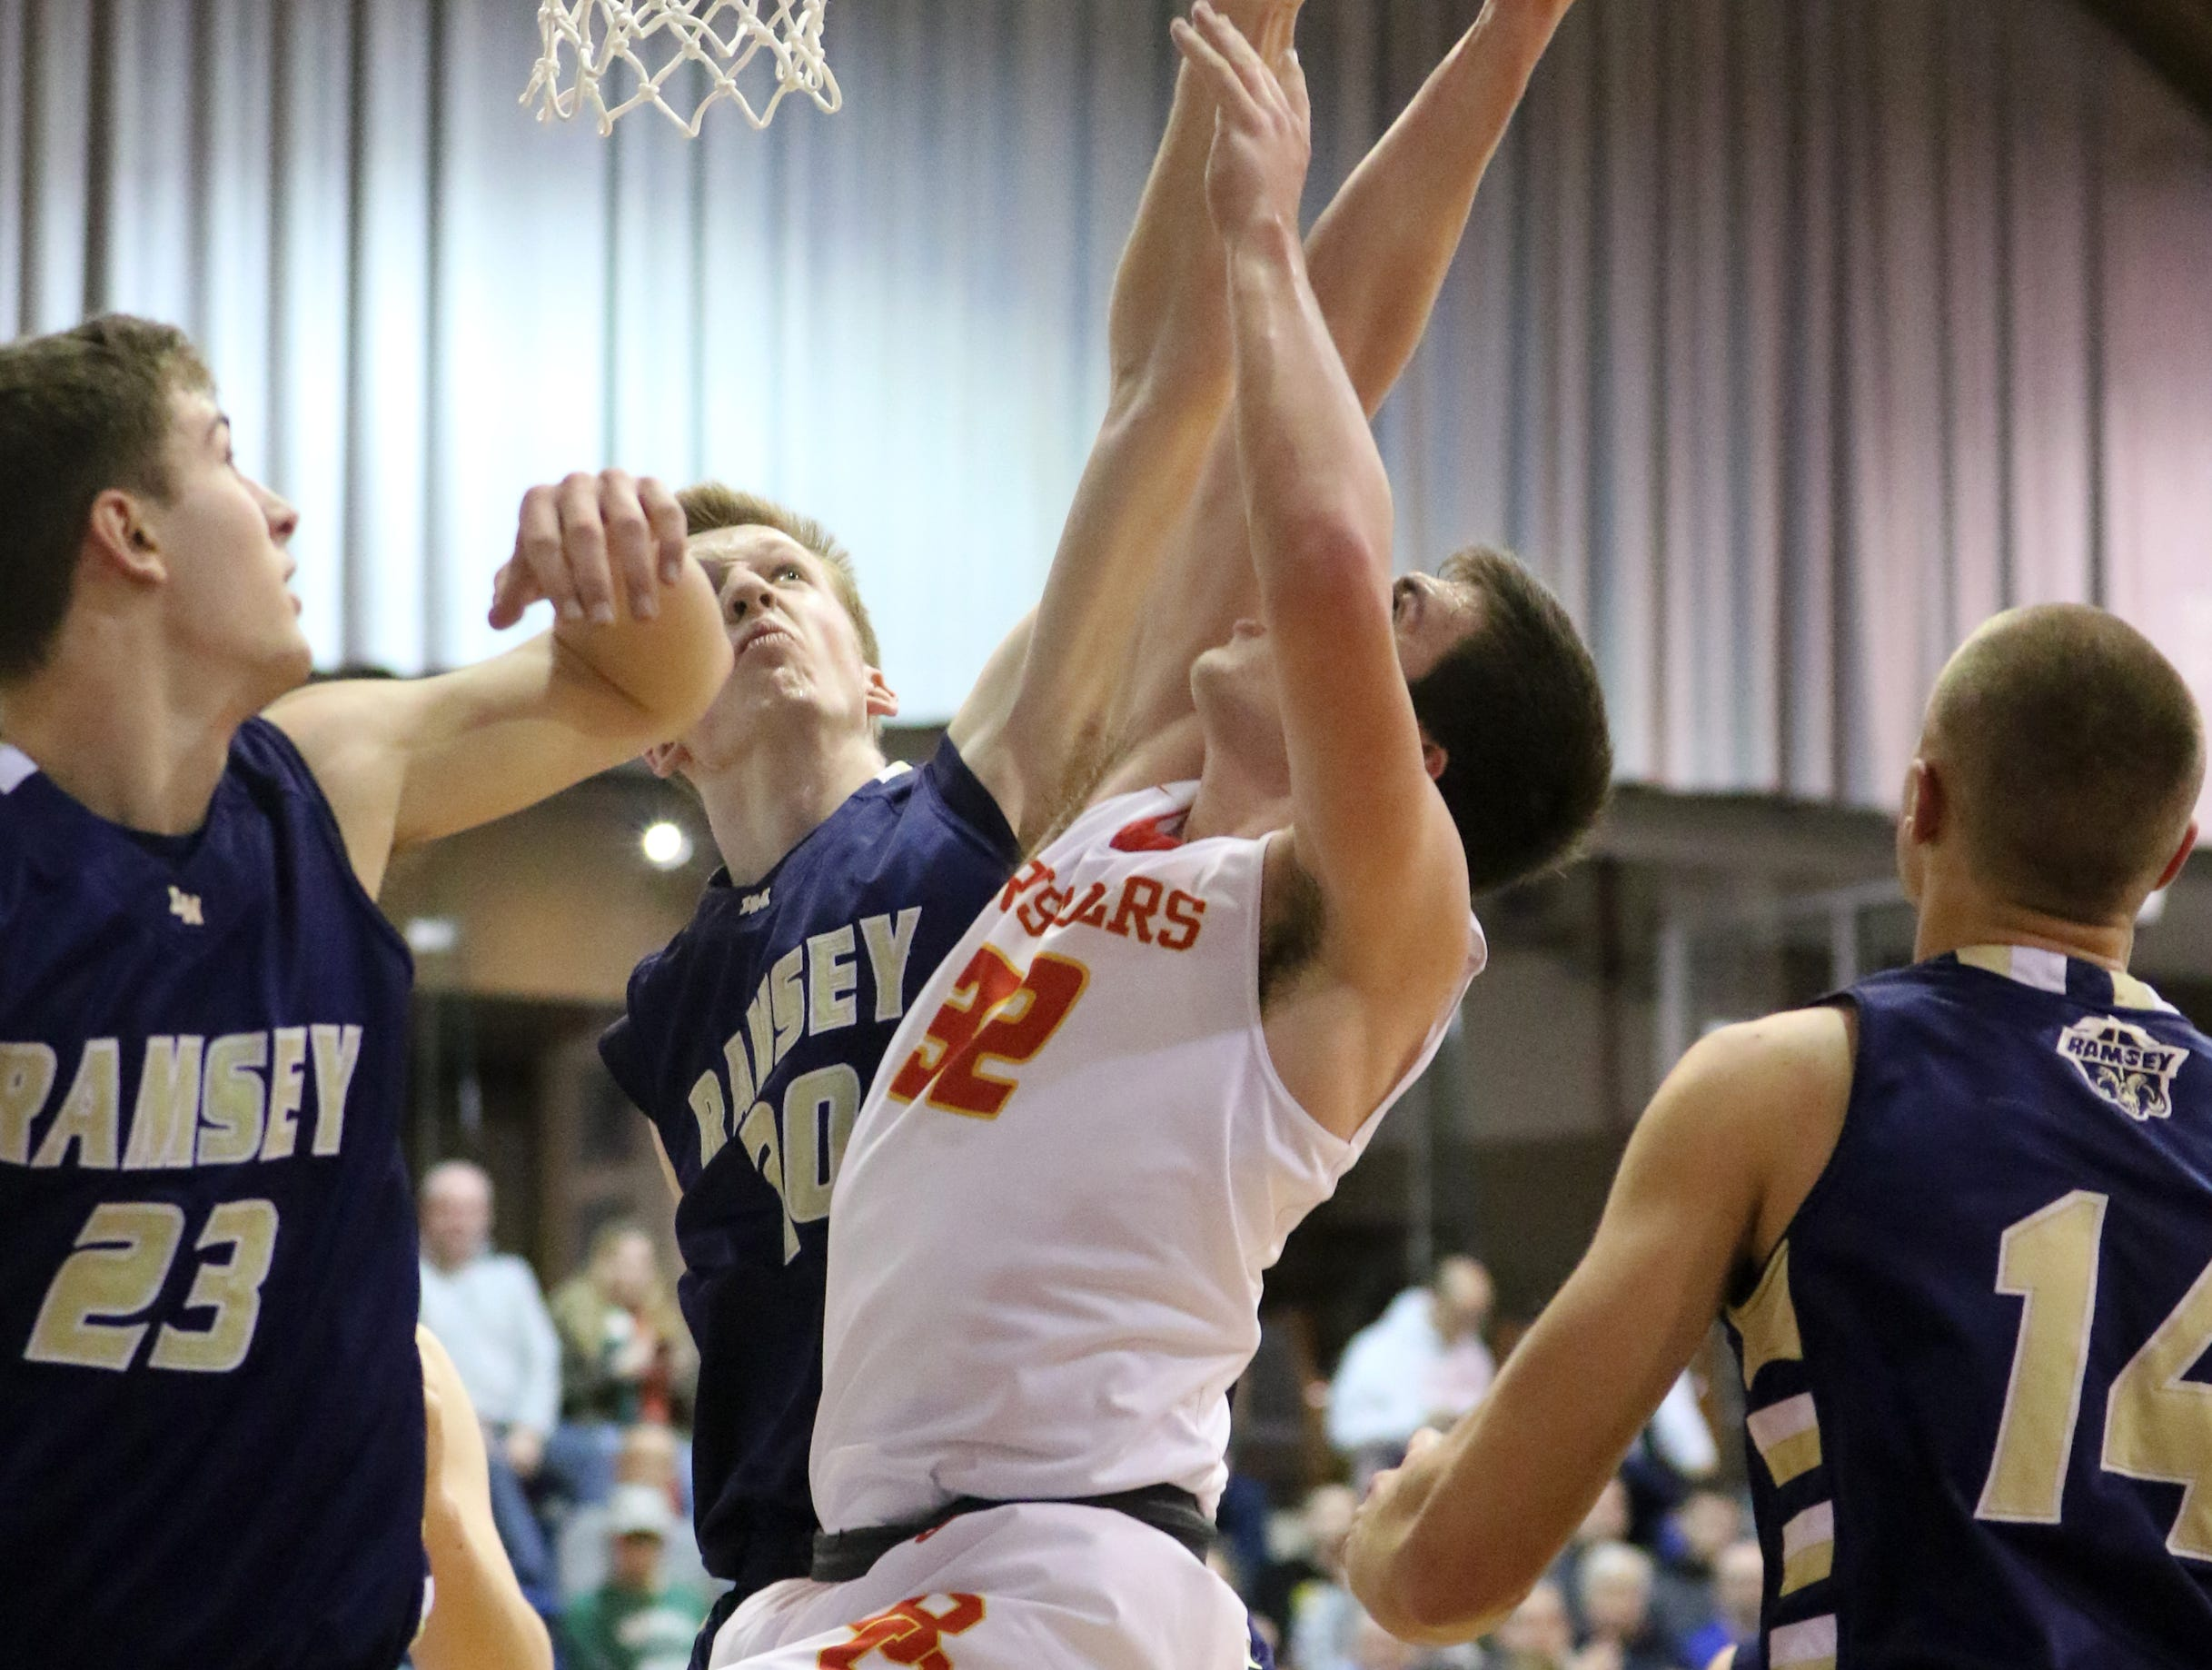 Sean Hansen, of Ramsey, blocks Zach Freemantle, of Bergen Catholic, by the net.  Despite the block, the Crusaders went on to win, 60-50, at the Bergen County Jamboree.  Sunday, February 10, 2019